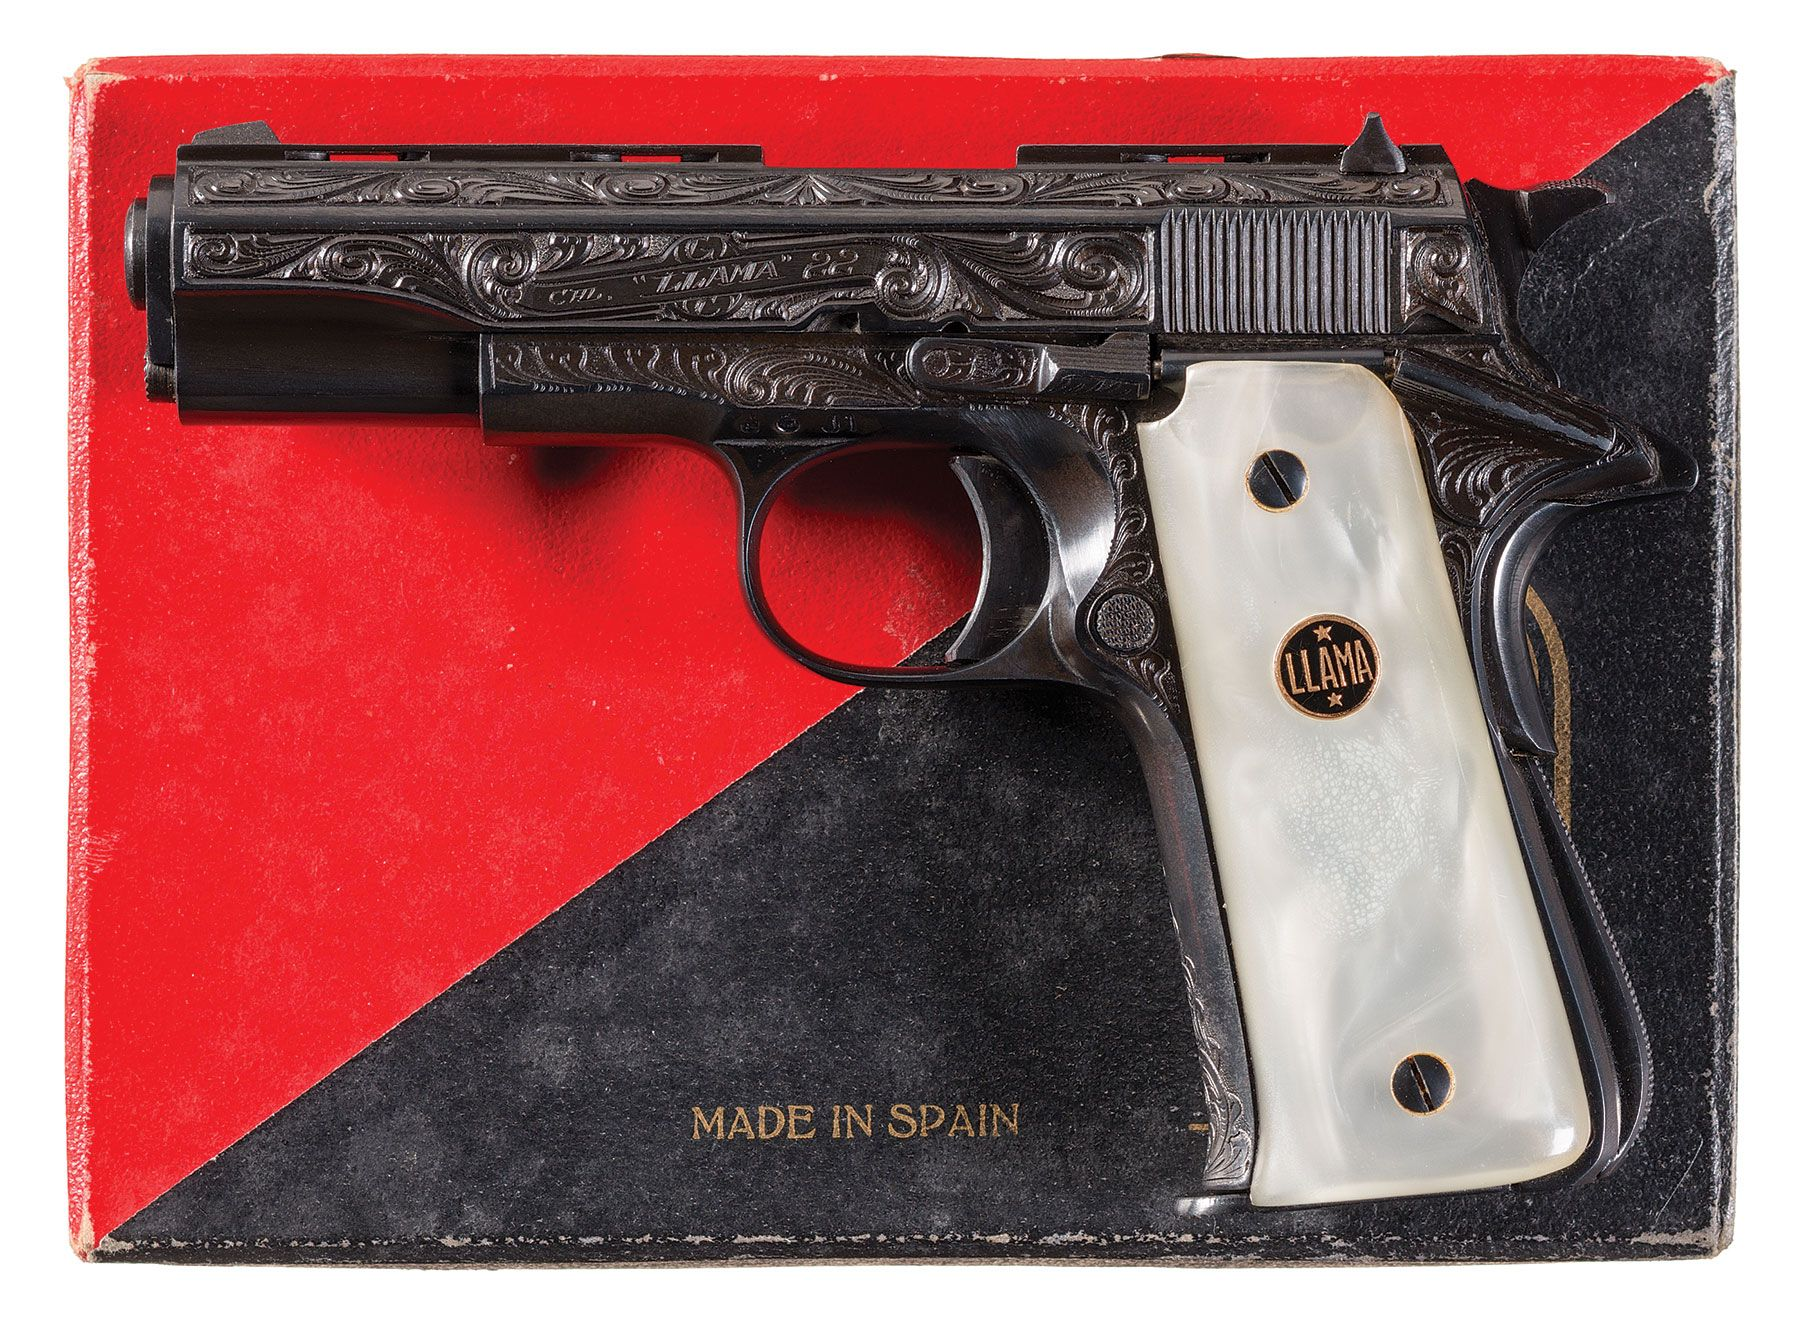 Colt firearms serial numbers for mk iv series 80